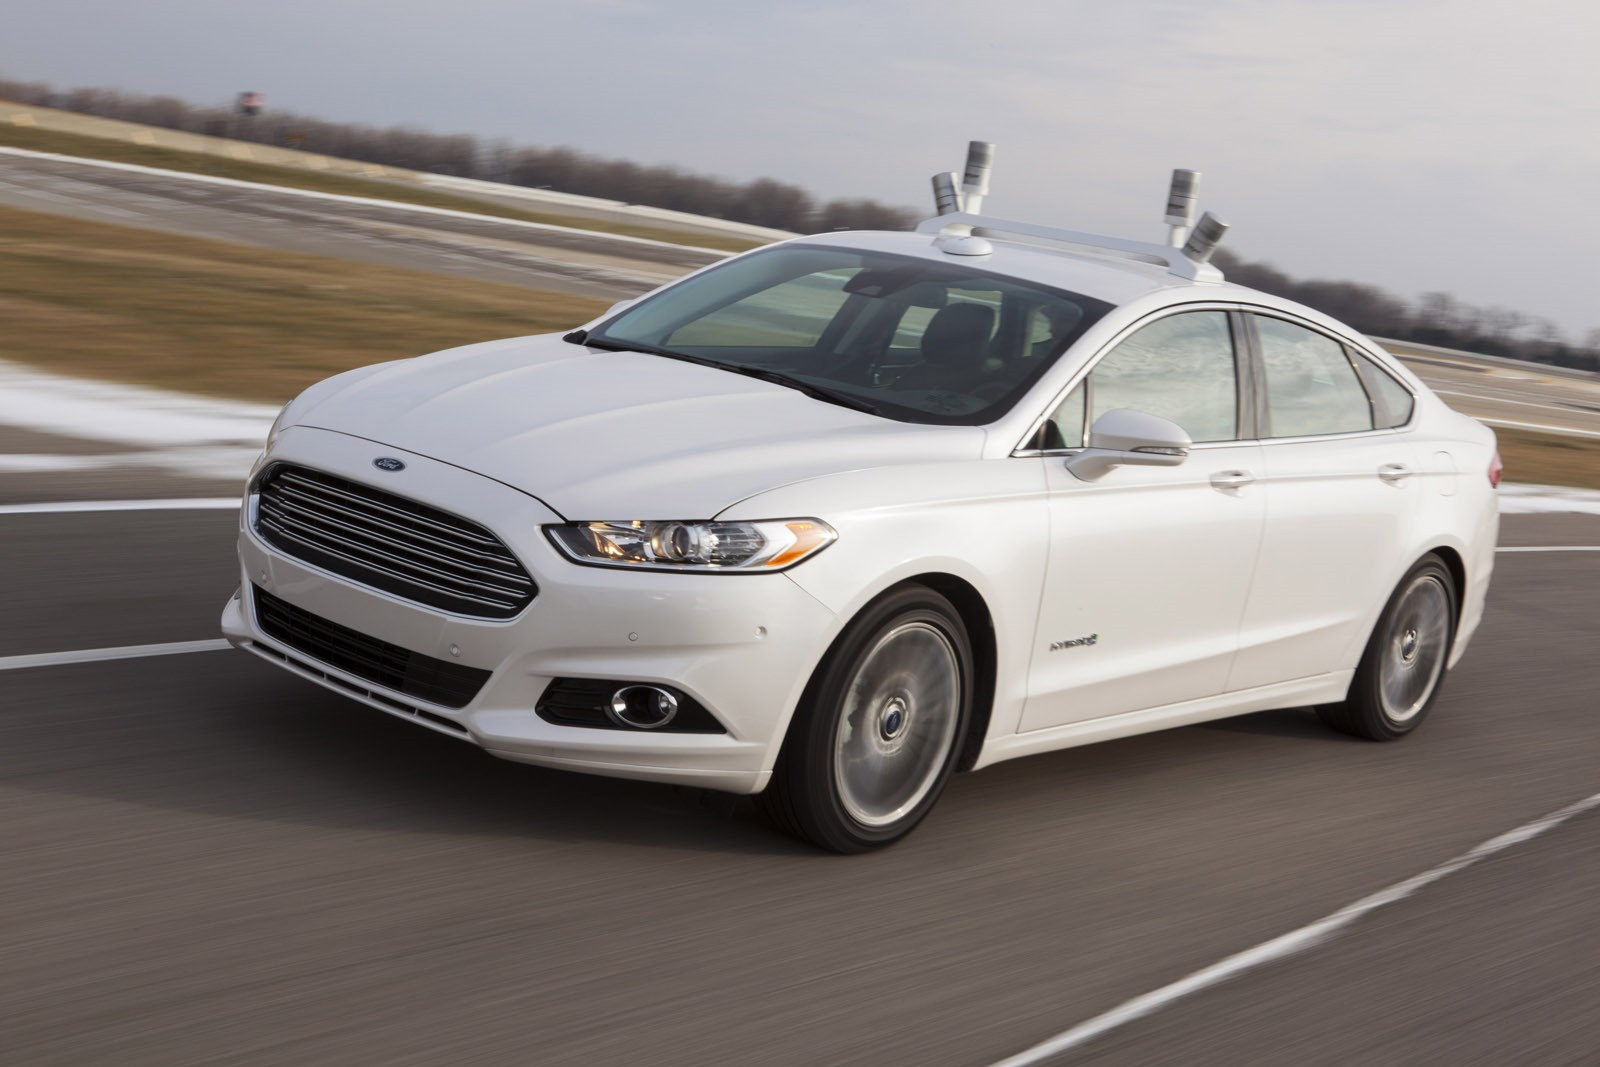 Ford-Fusion-Hybrid-Research-Vehicle-001.jpg